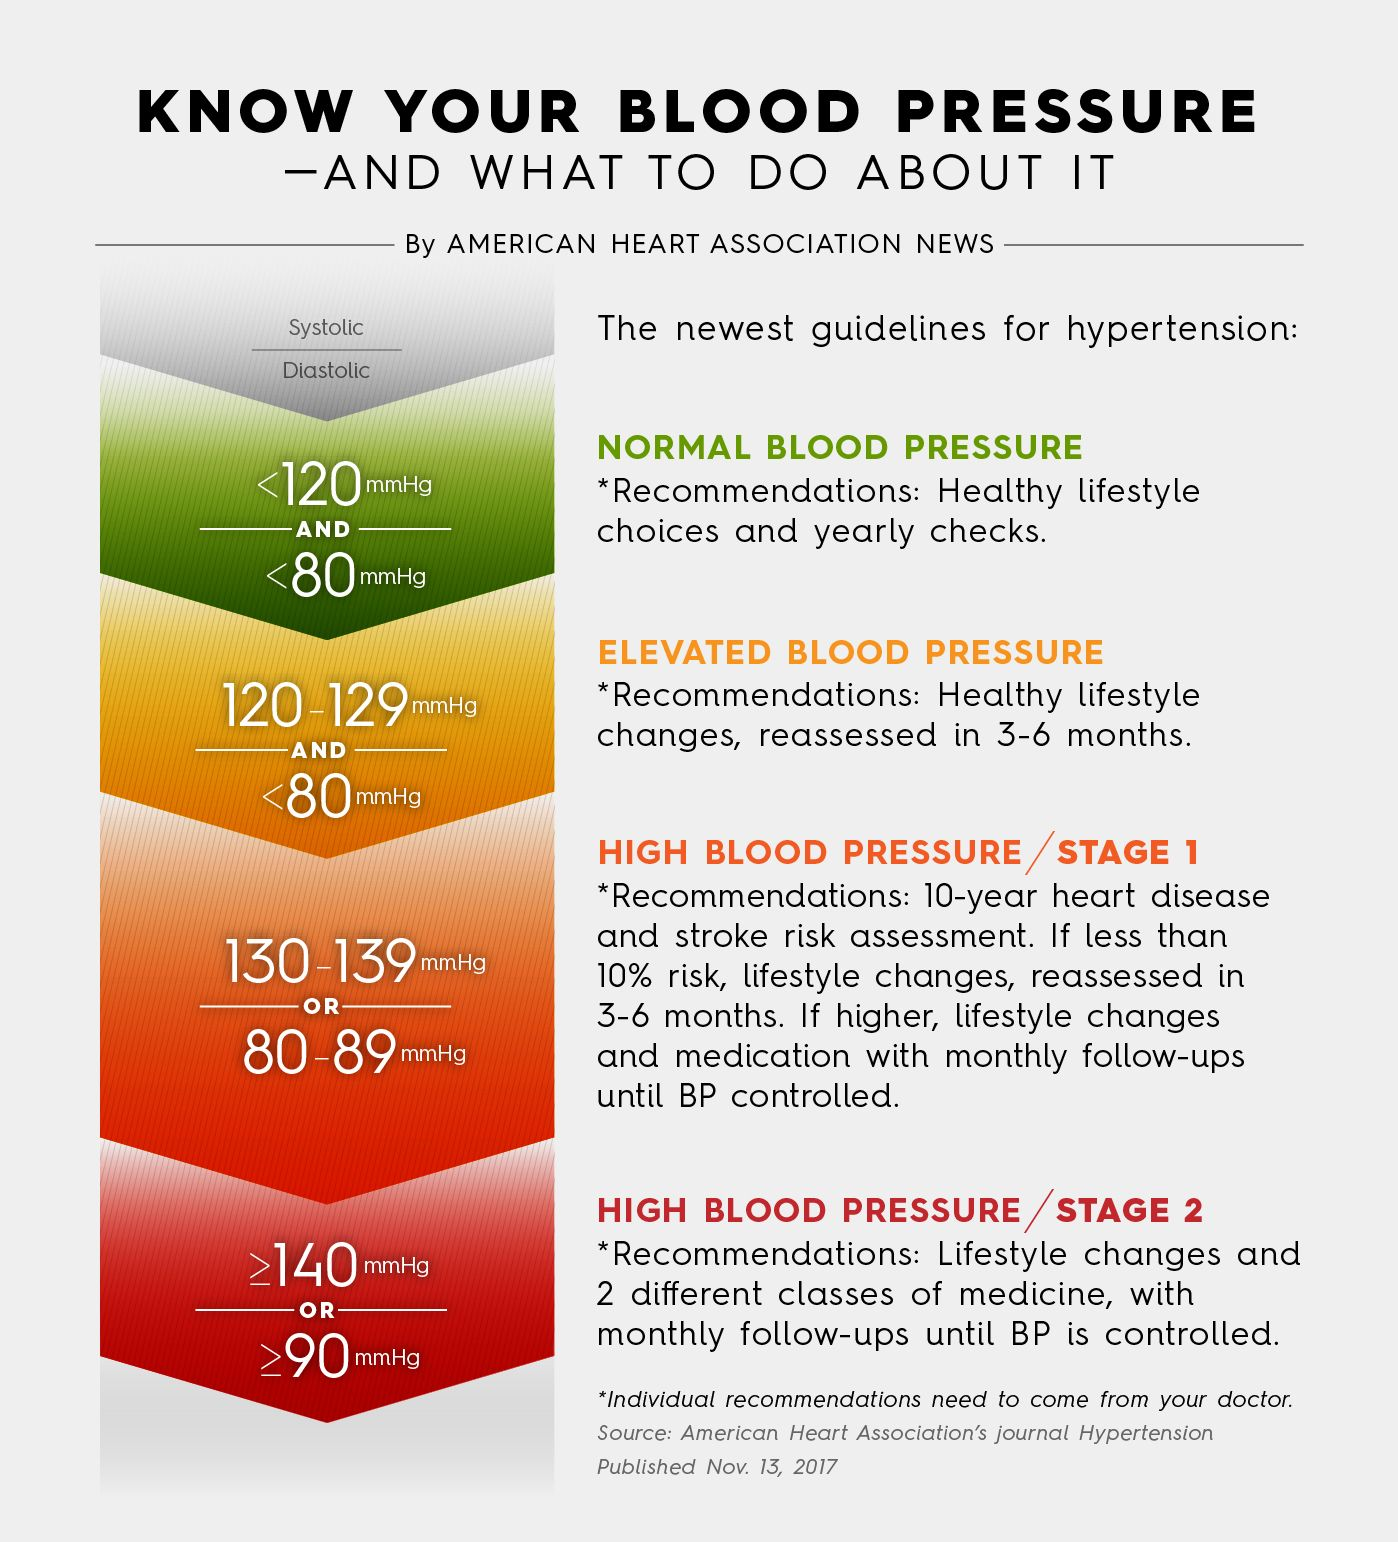 New blood pressure guidelines released